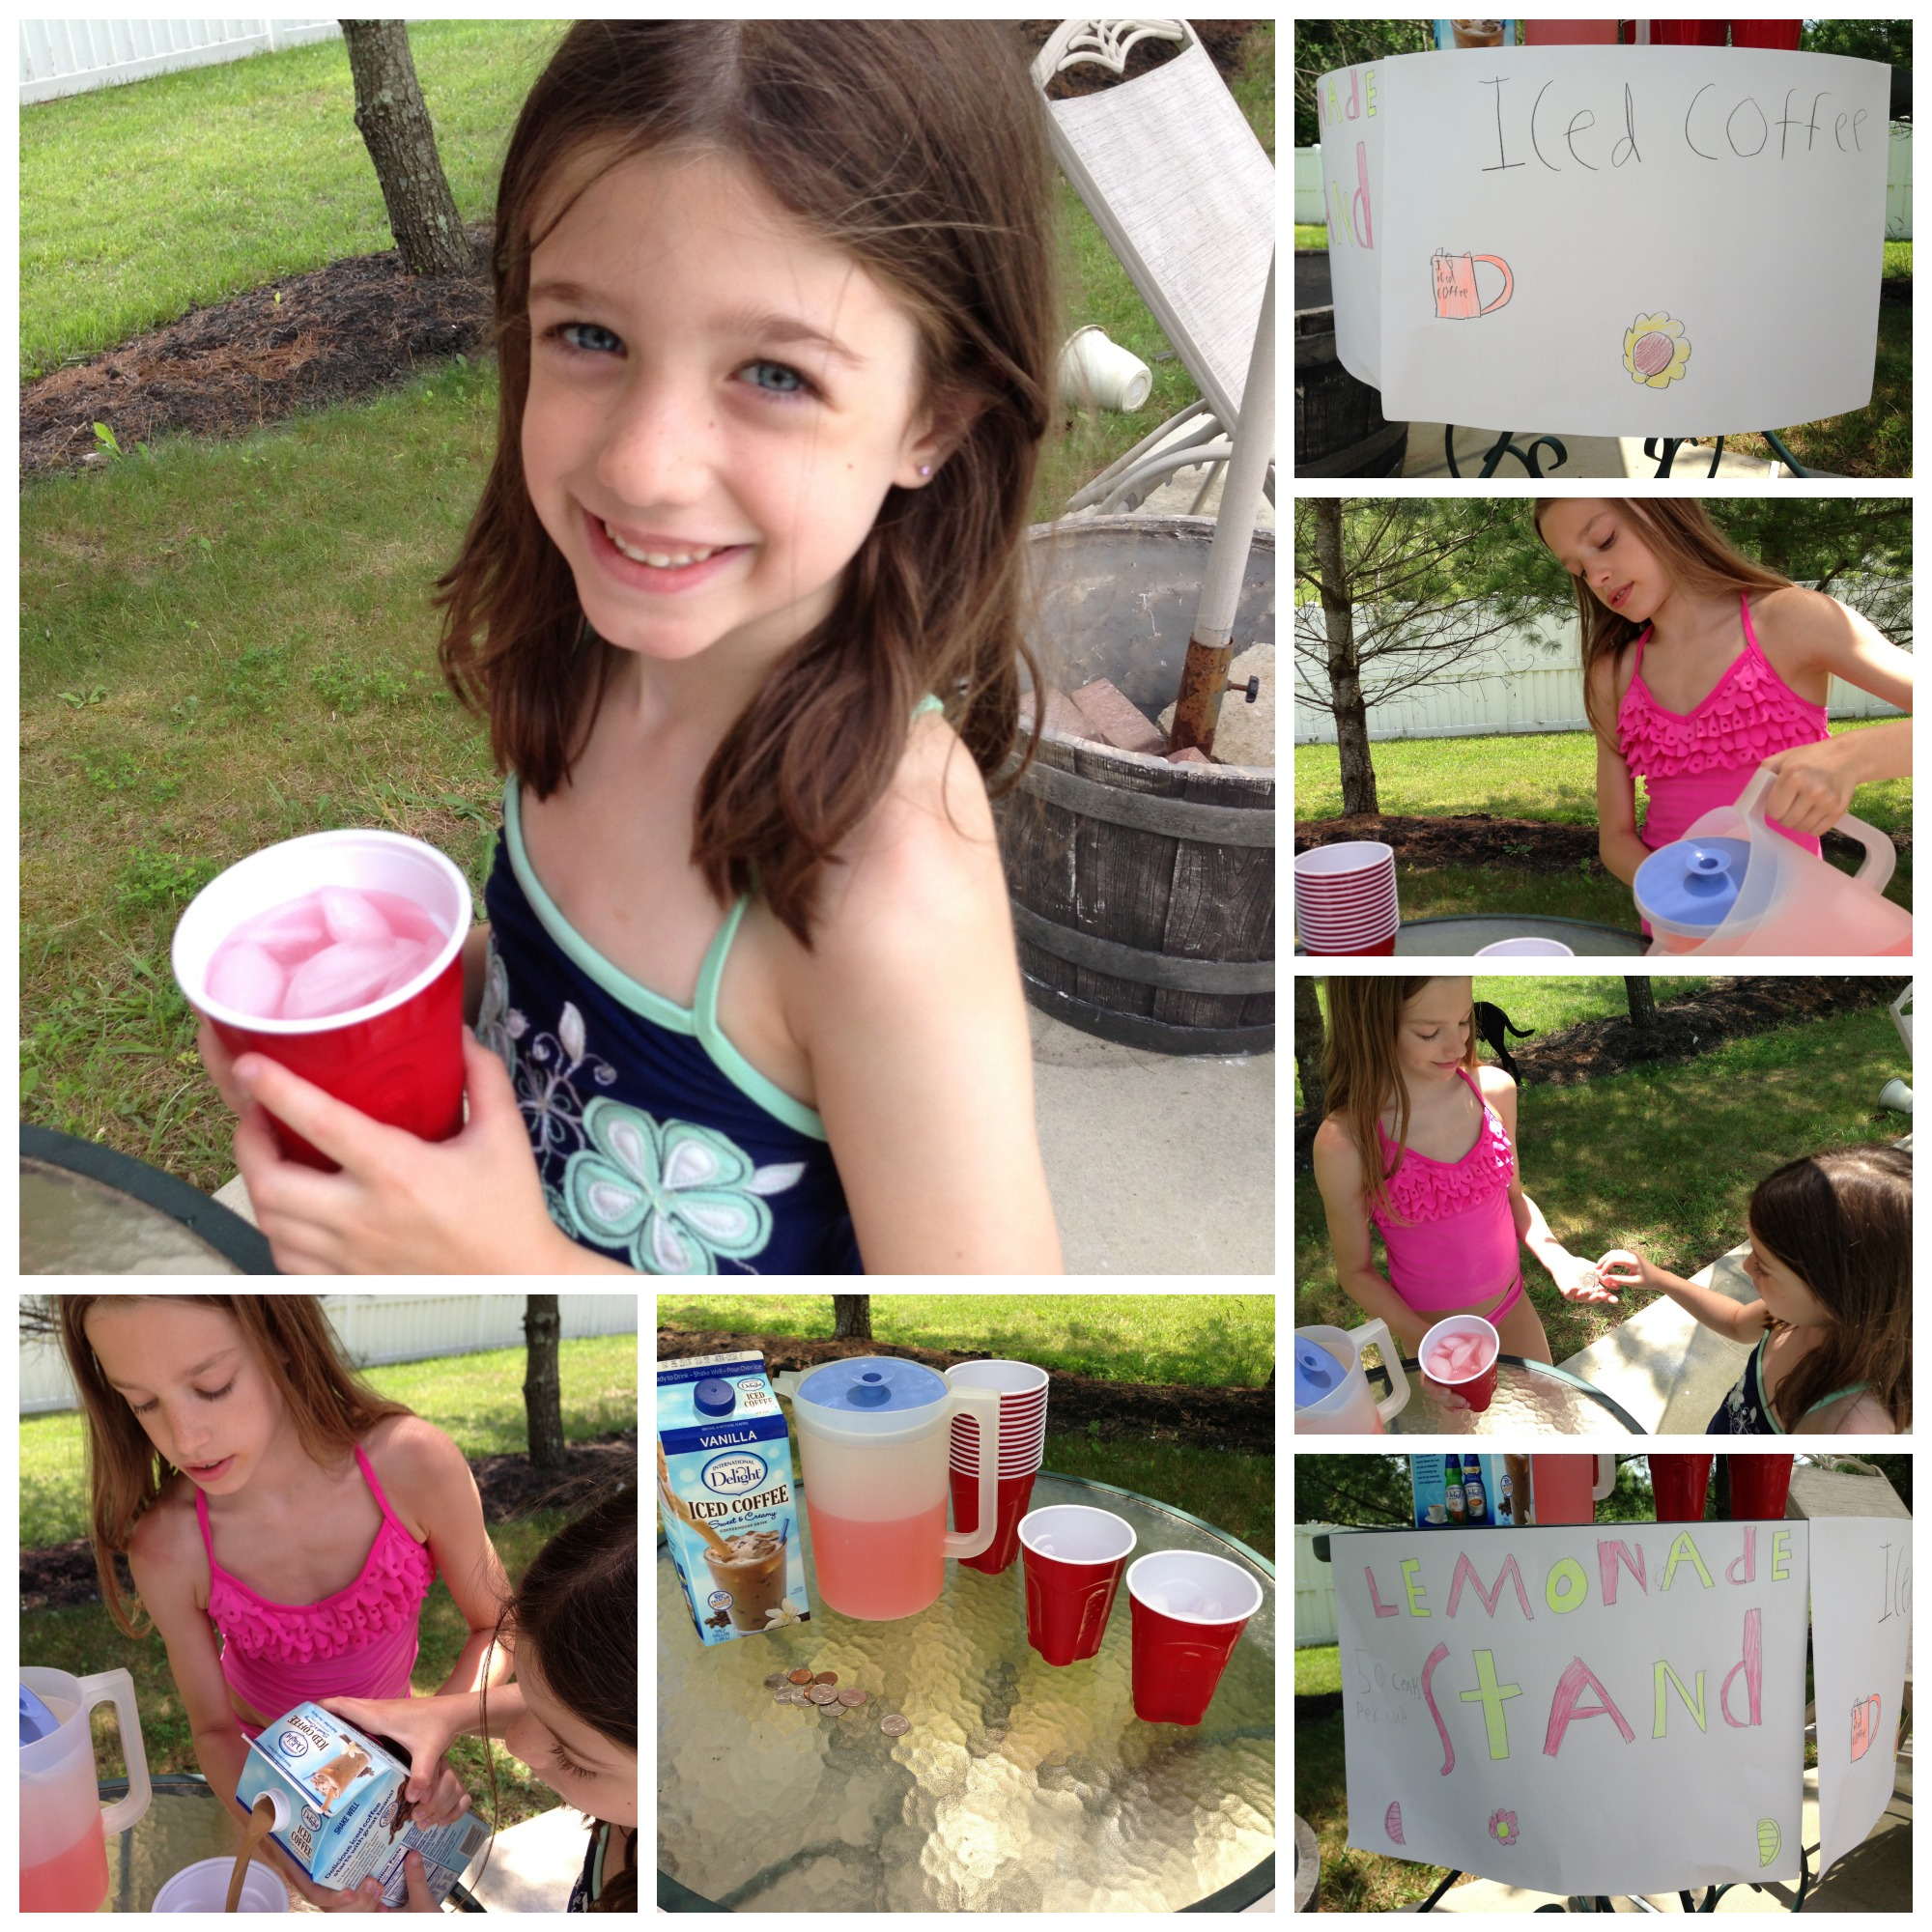 PicMonkey Collage Lemonade & Iced Coffee Stand